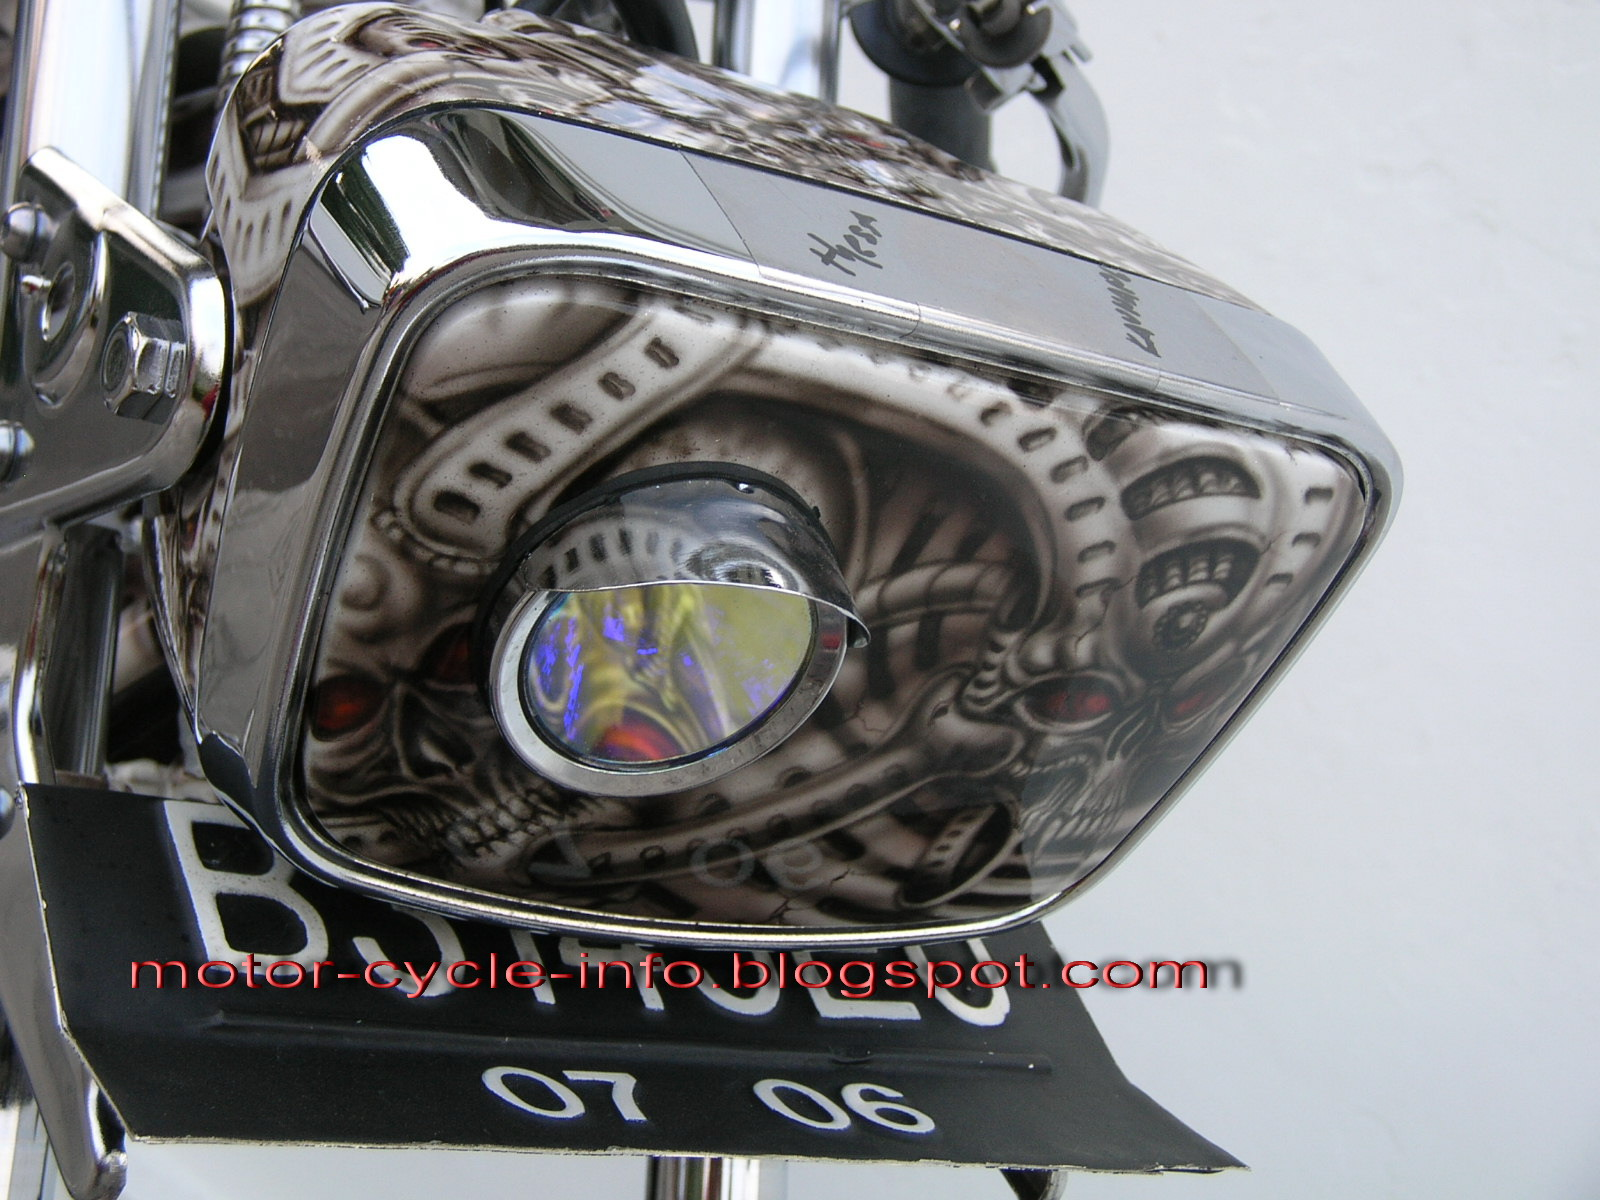 ... foto gallery is about RX king Modification art airbrush in skull thema